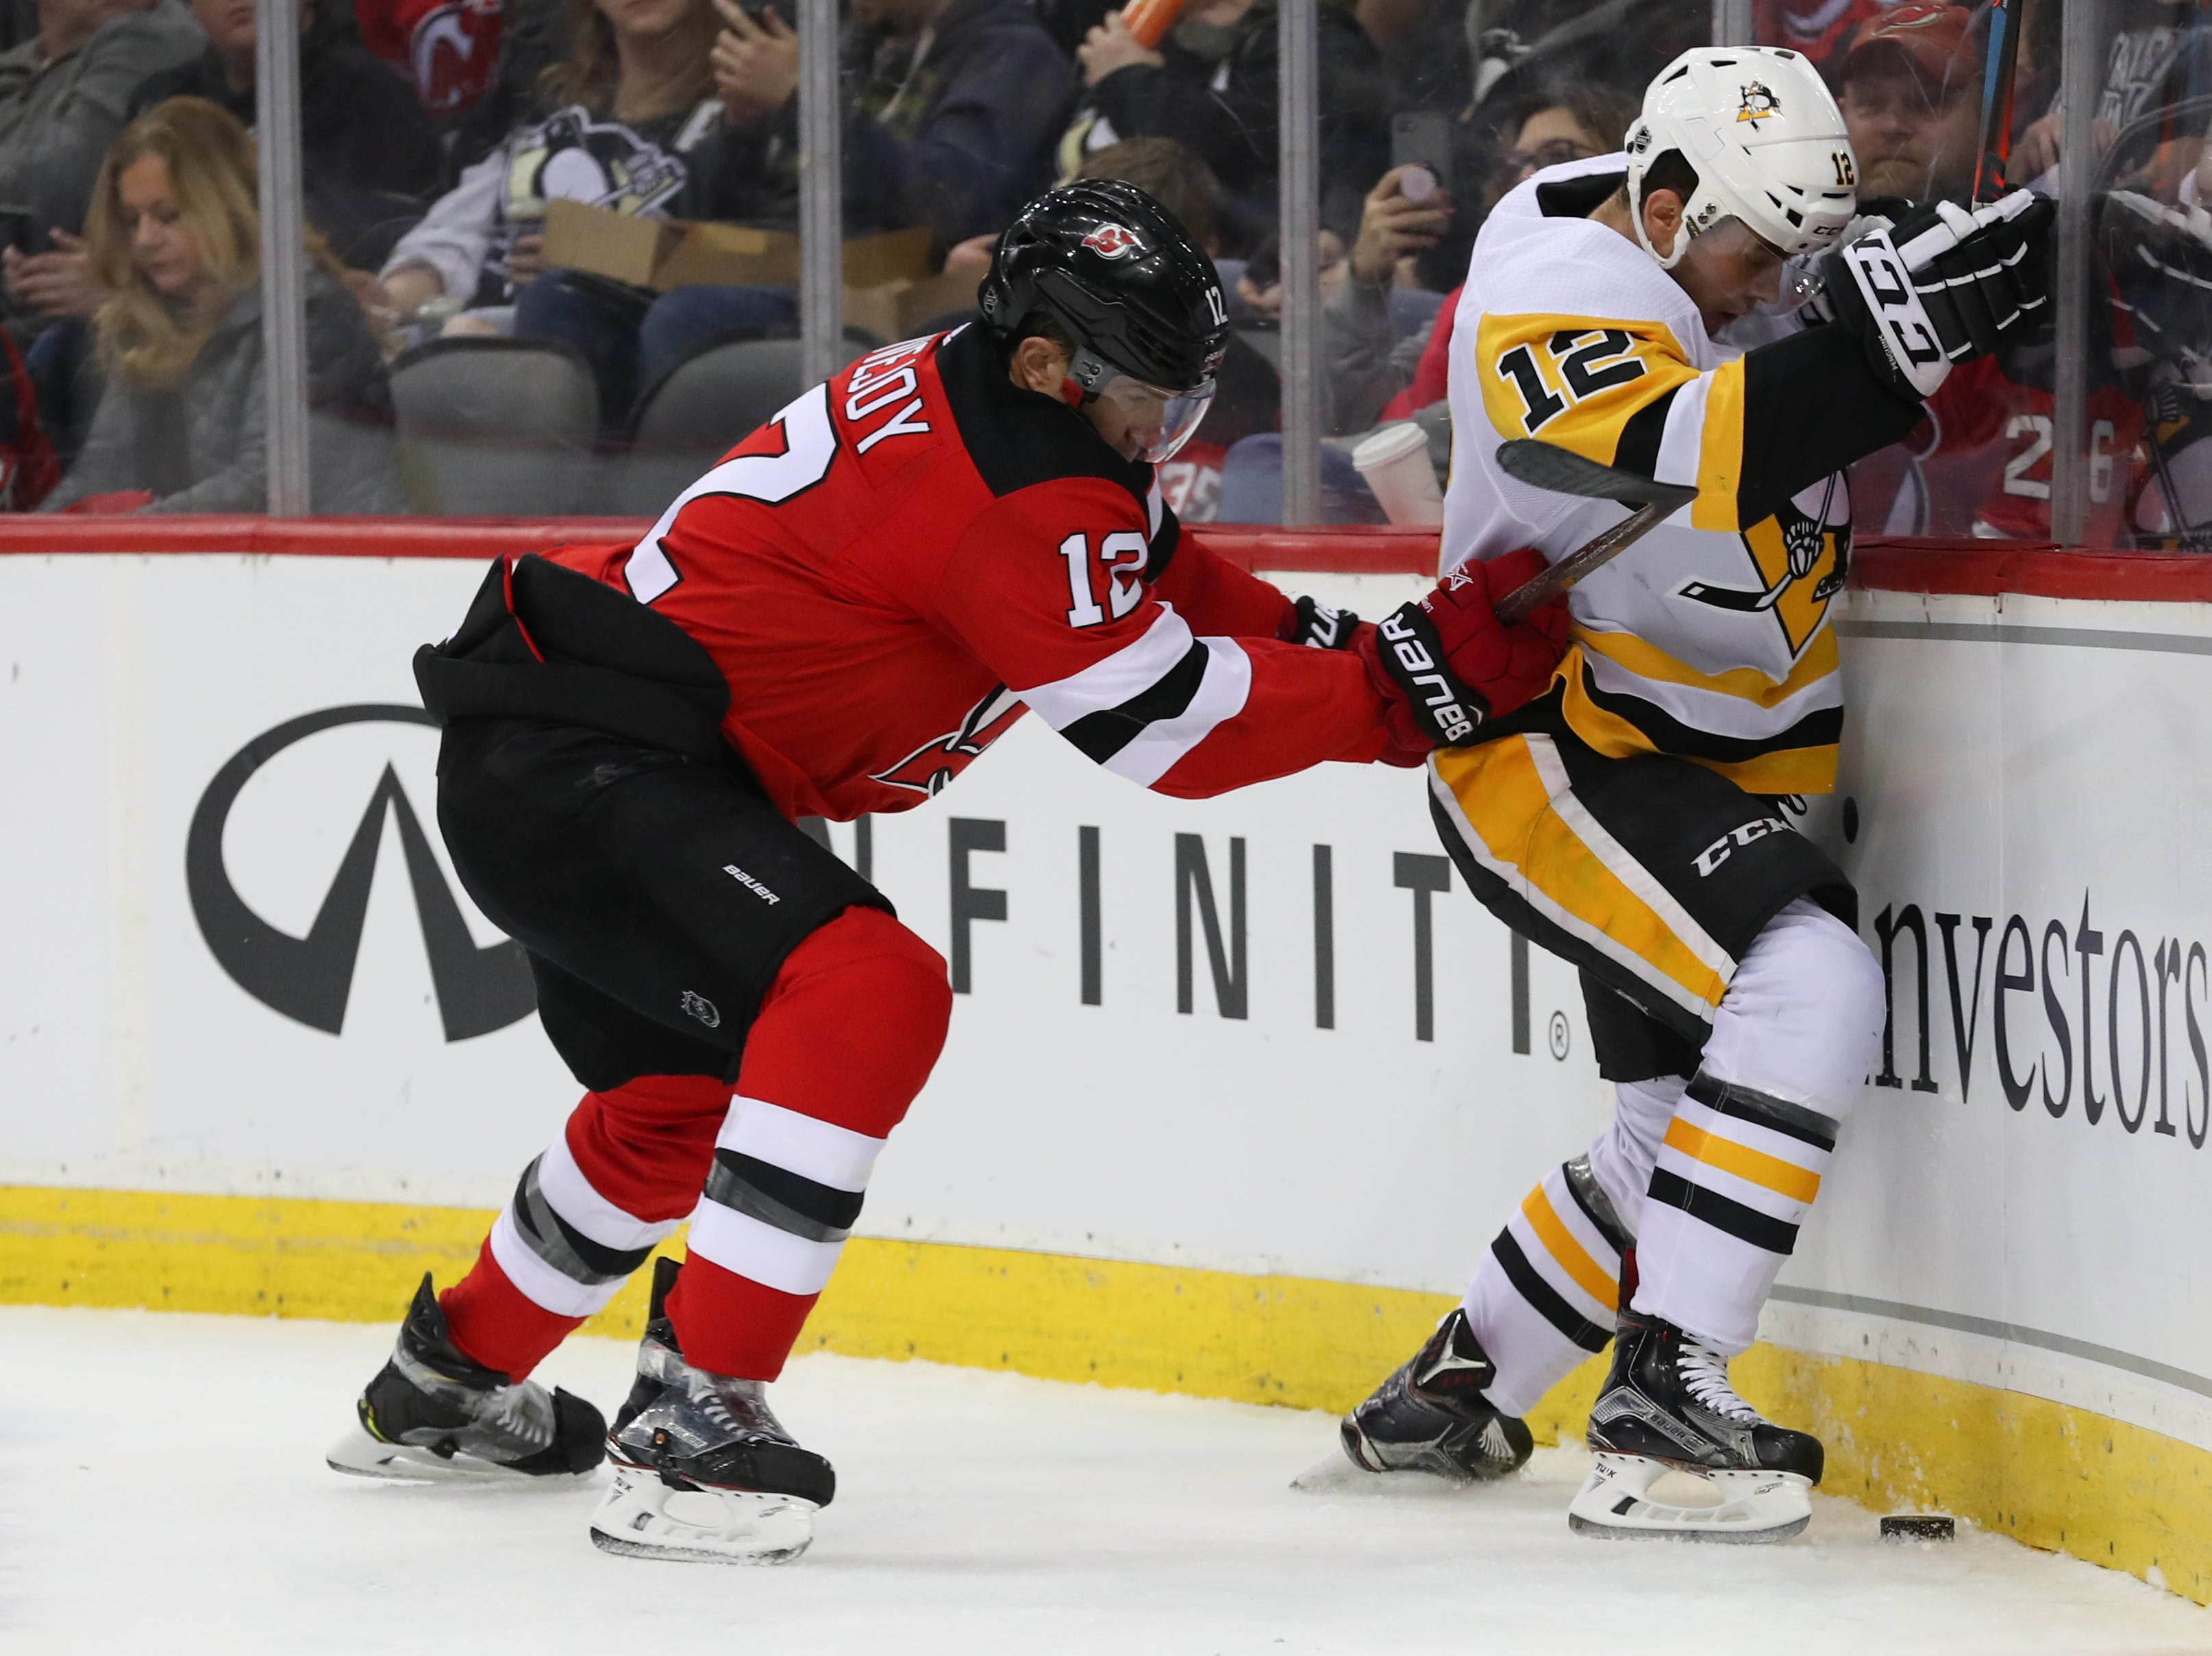 Feb 19, 2019; Newark, NJ, USA; New Jersey Devils defenseman Ben Lovejoy (12) hits Pittsburgh Penguins center Dominik Simon (12) during the first period at Prudential Center. Mandatory Credit: Ed Mulholland-USA TODAY Sports